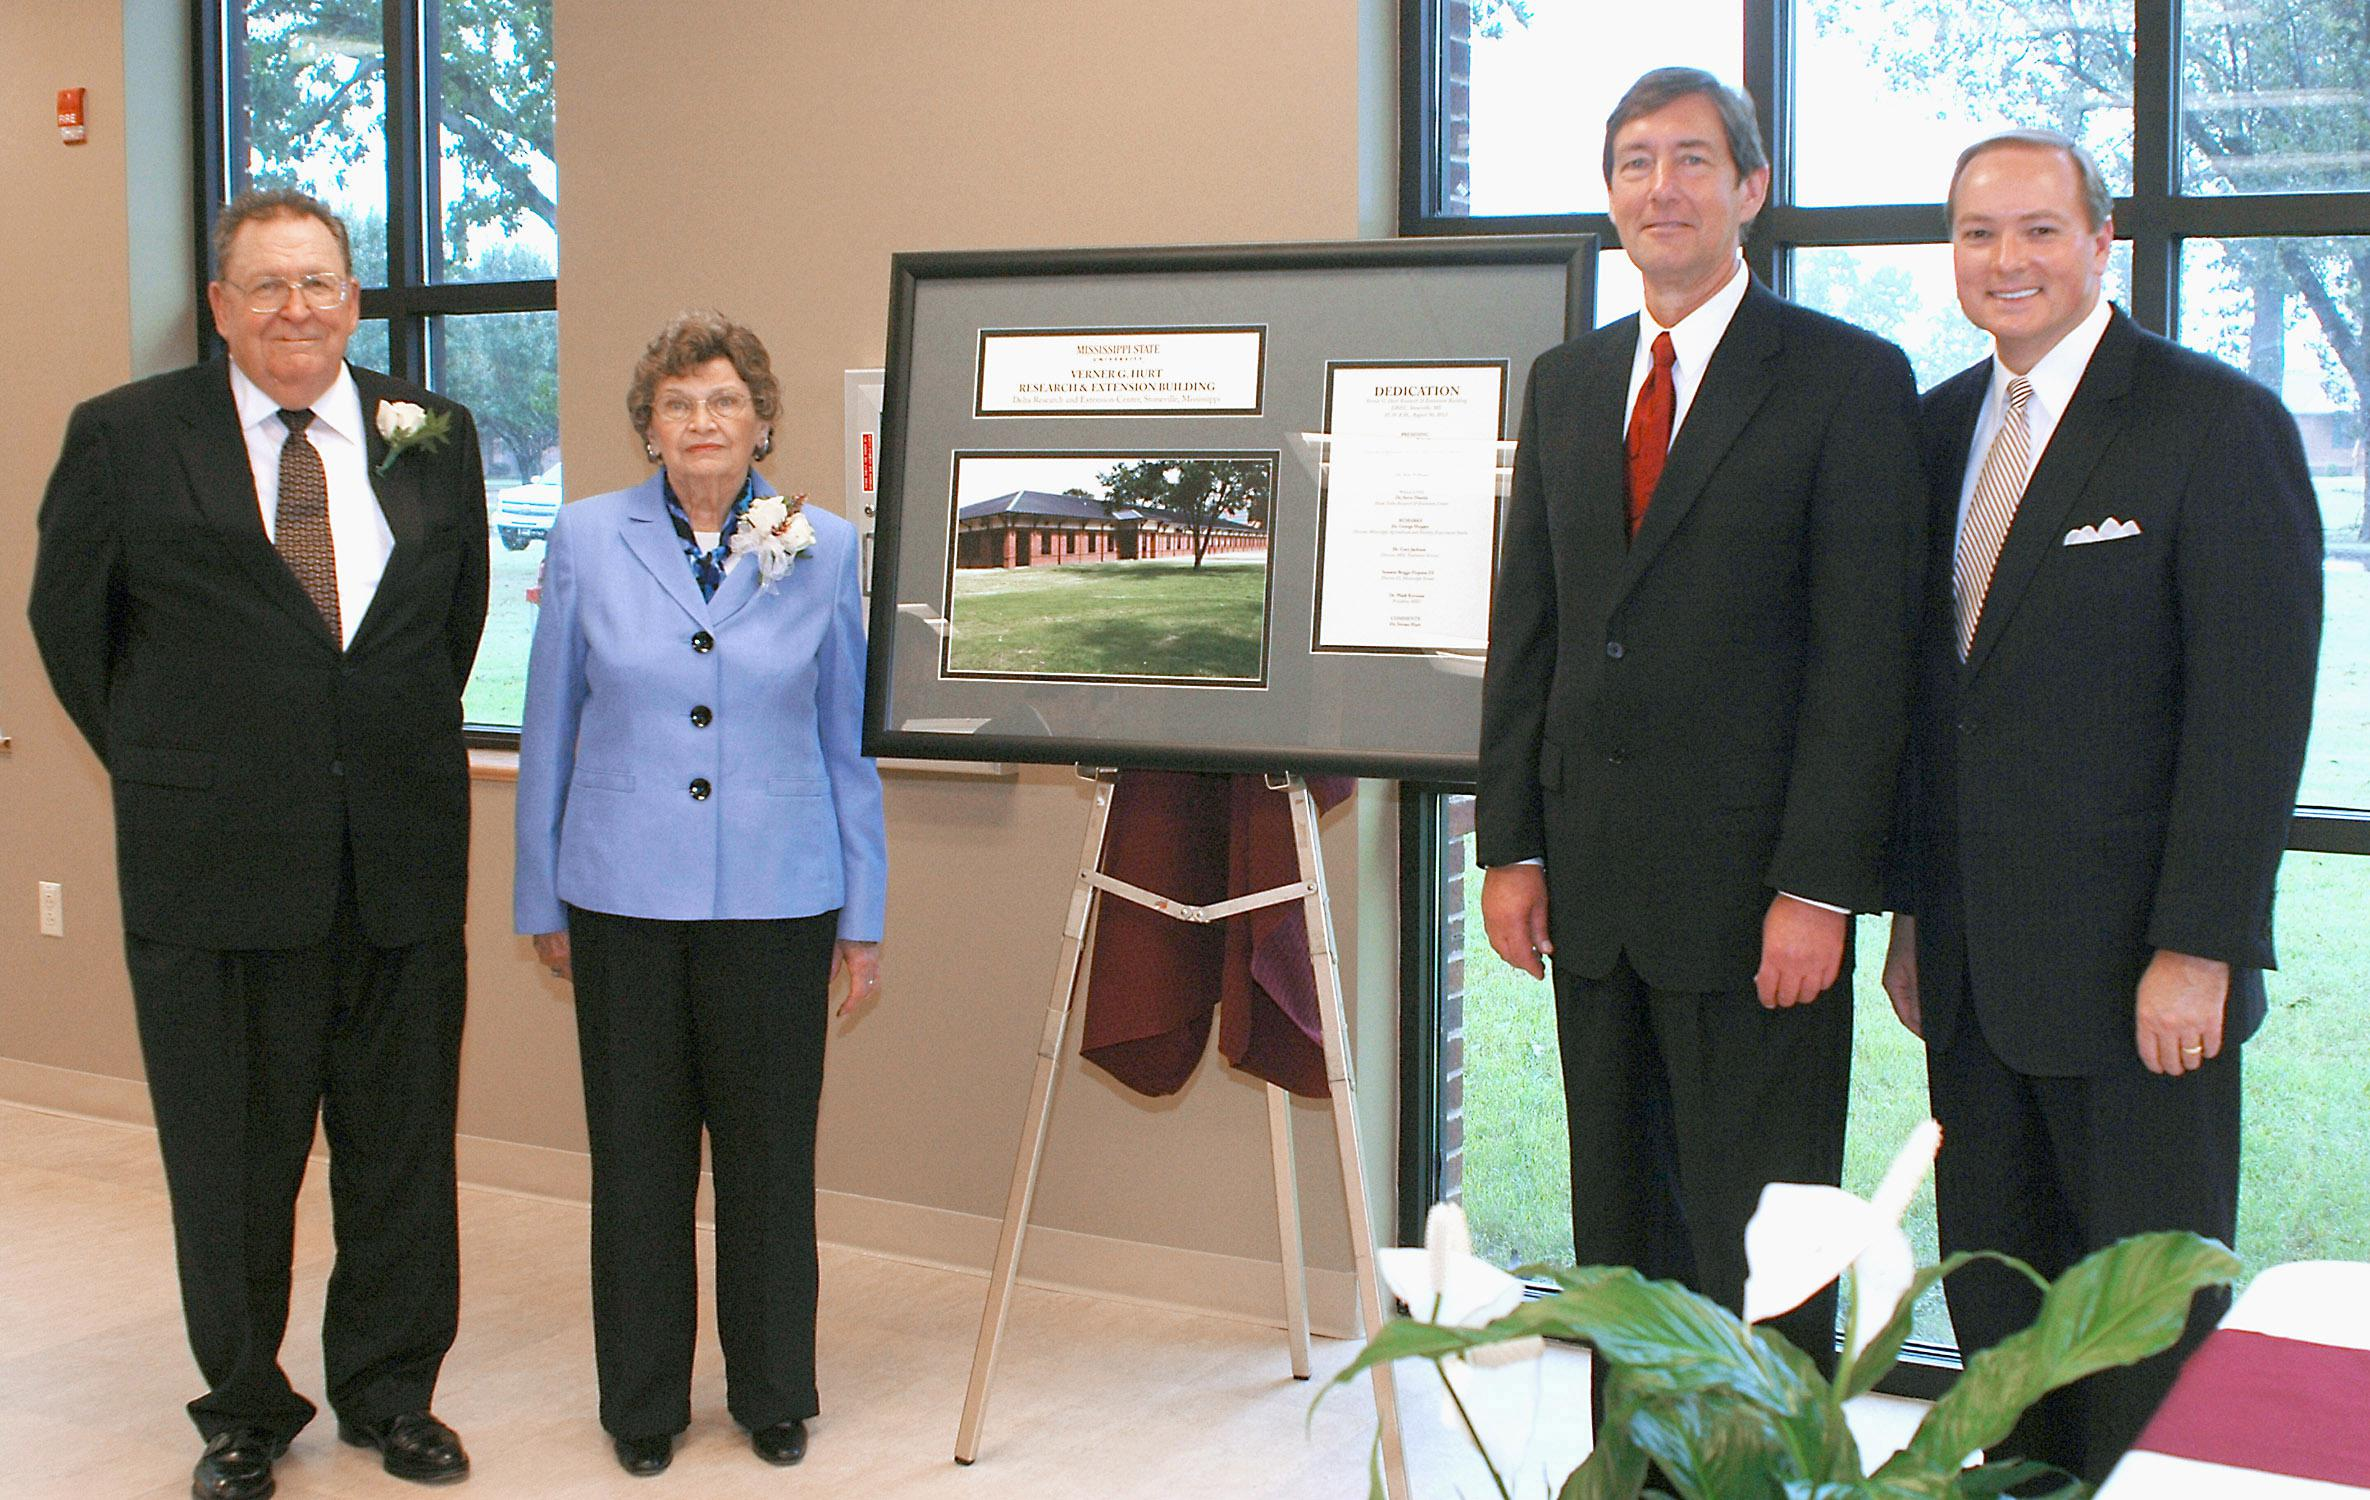 Verner G. Hurt, from left, and his wife, Norma, join Mississippi State University Vice President Greg Bohach and MSU President Mark Keenum at the Aug. 30 dedication of the Verner G. Hurt Research and Extension Building in Stoneville. The new building provides more than 19,000 square feet for offices and research. (Photo by MSU Delta Research and Extension Center/Rebekah Ray)